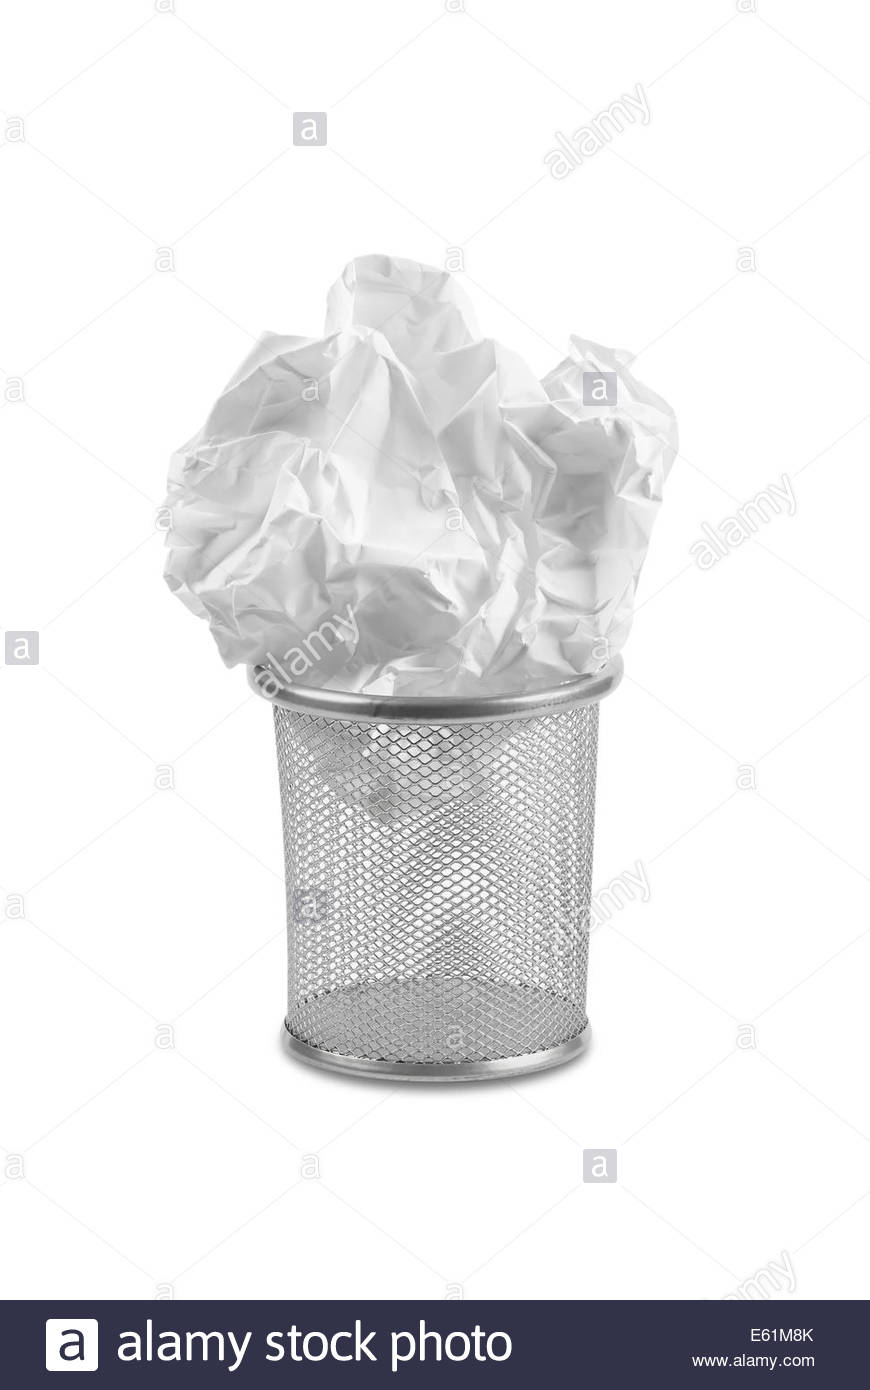 Wastepaper bin with large screwed up paper crammed on top. - Stock Image